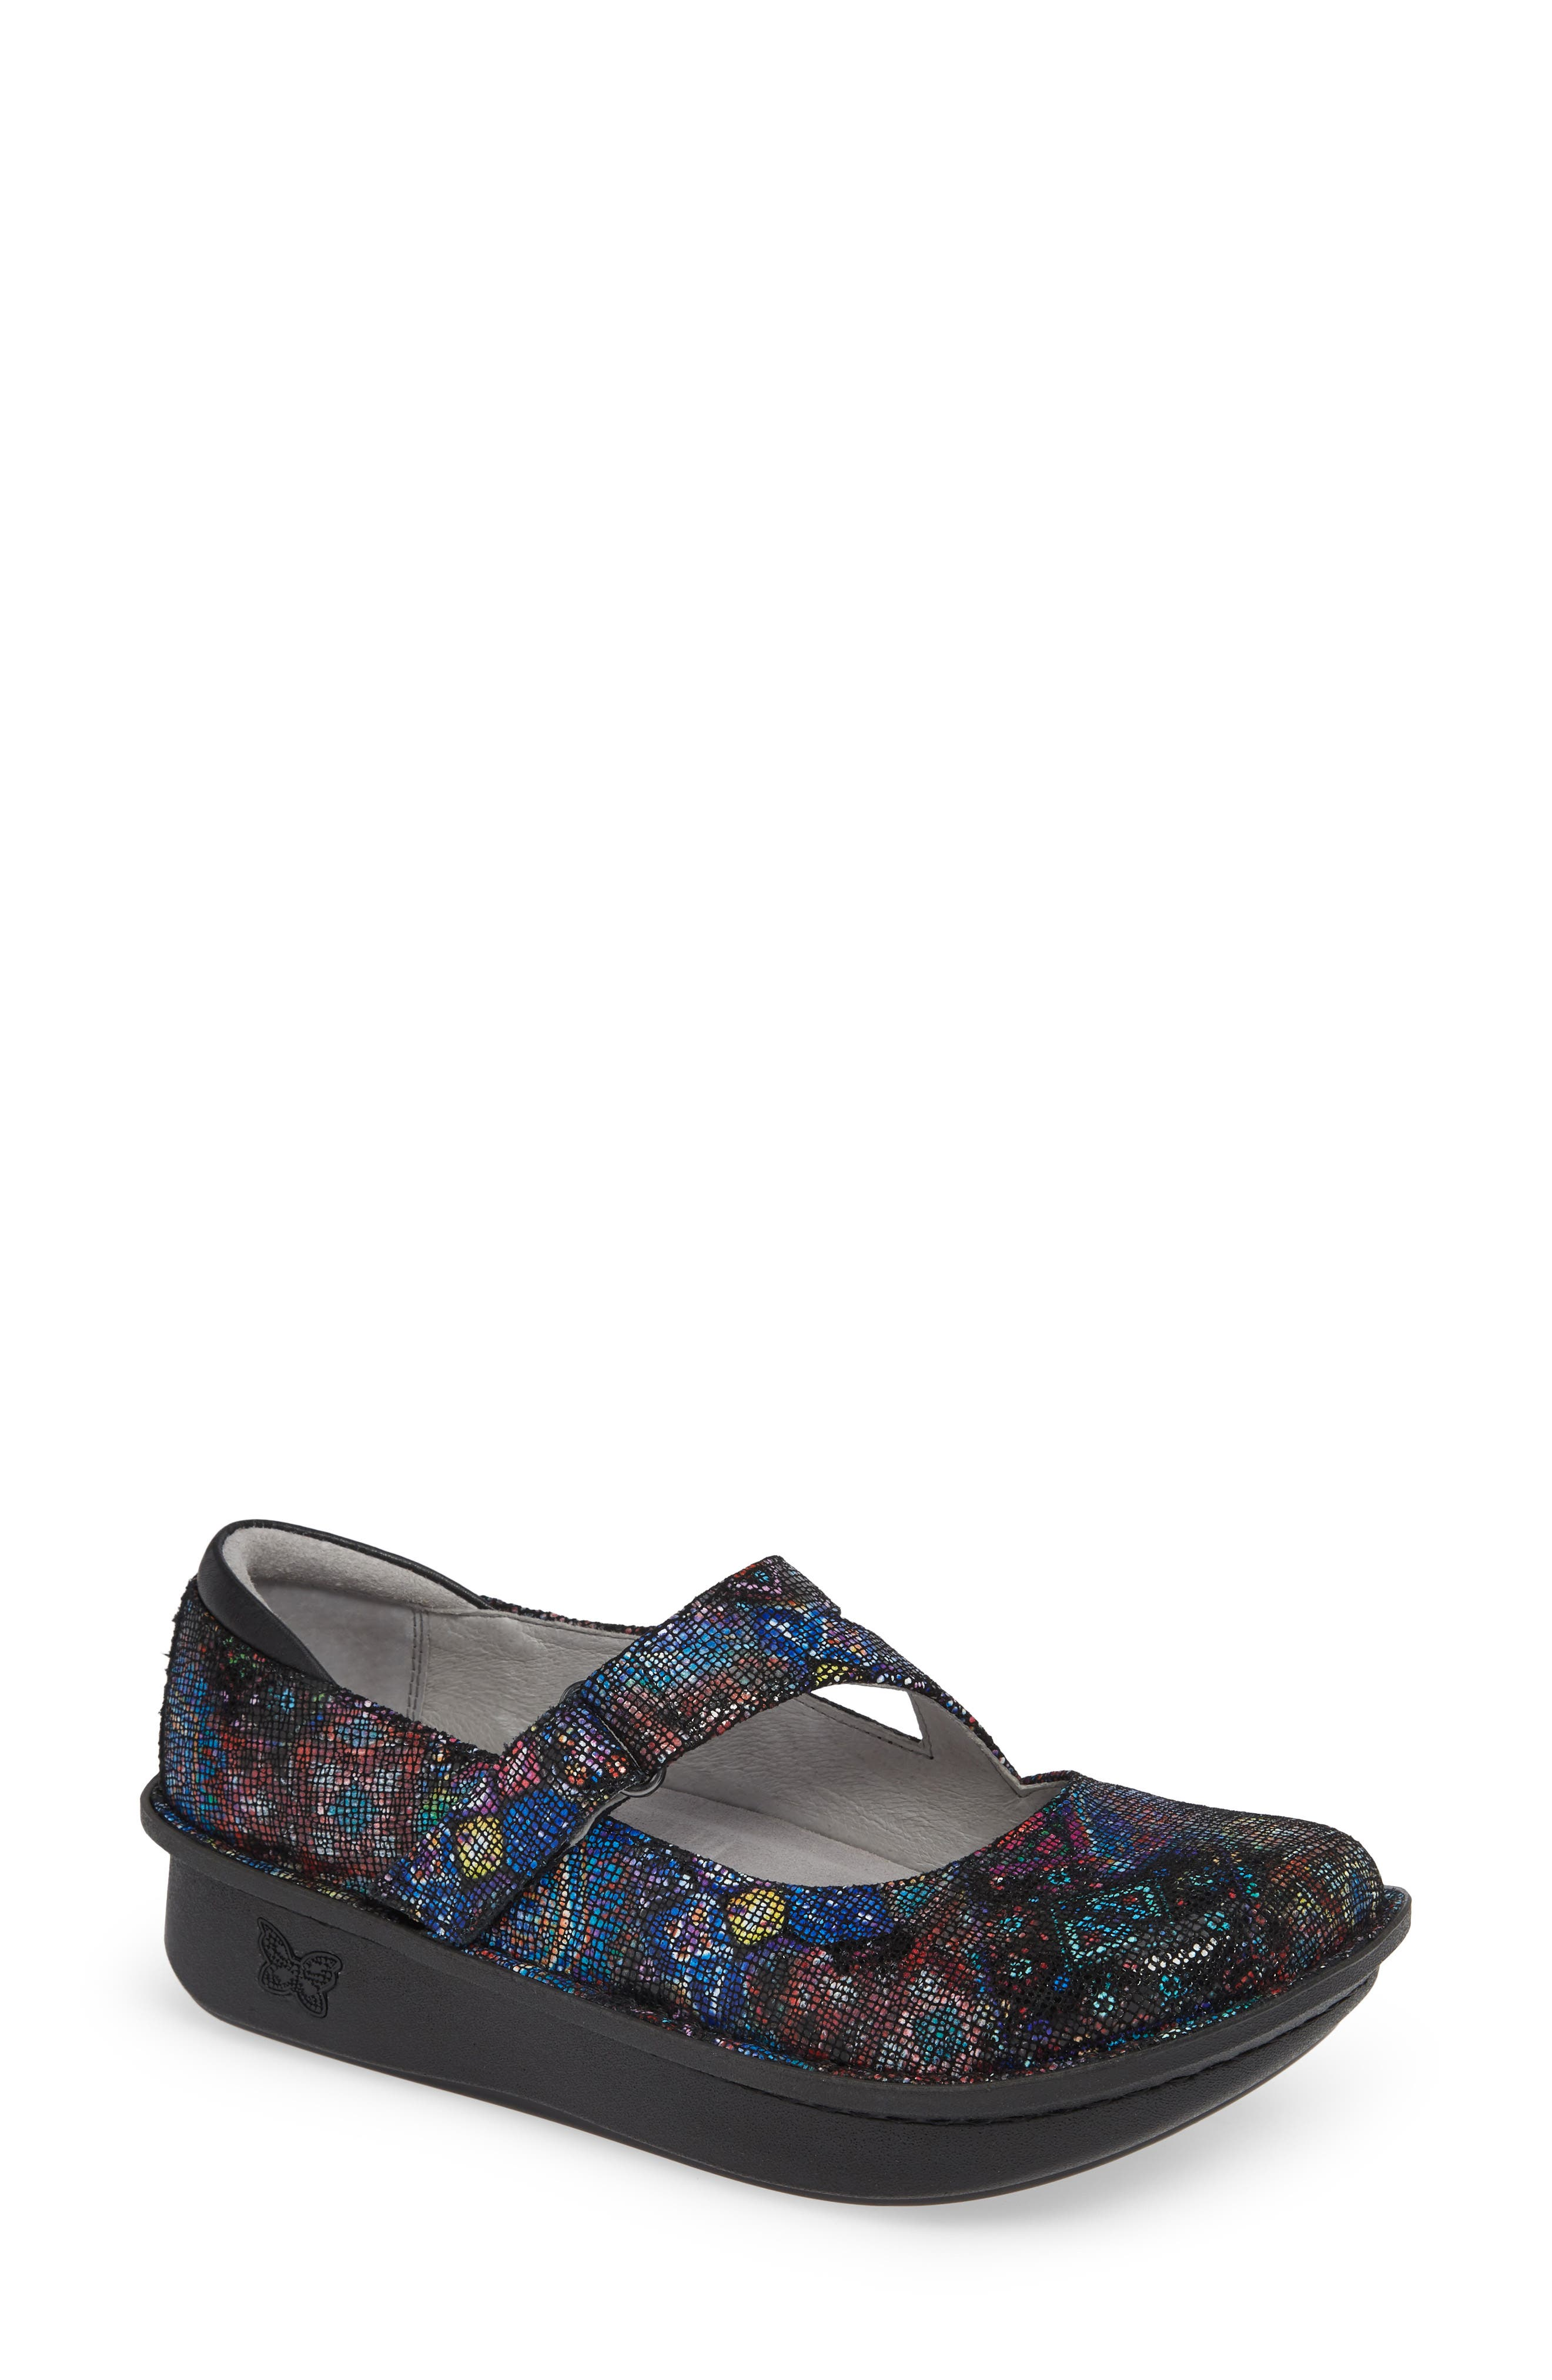 ALEGRIA 'Dayna' Slip-On, Main, color, BEAUTY BLUR LEATHER